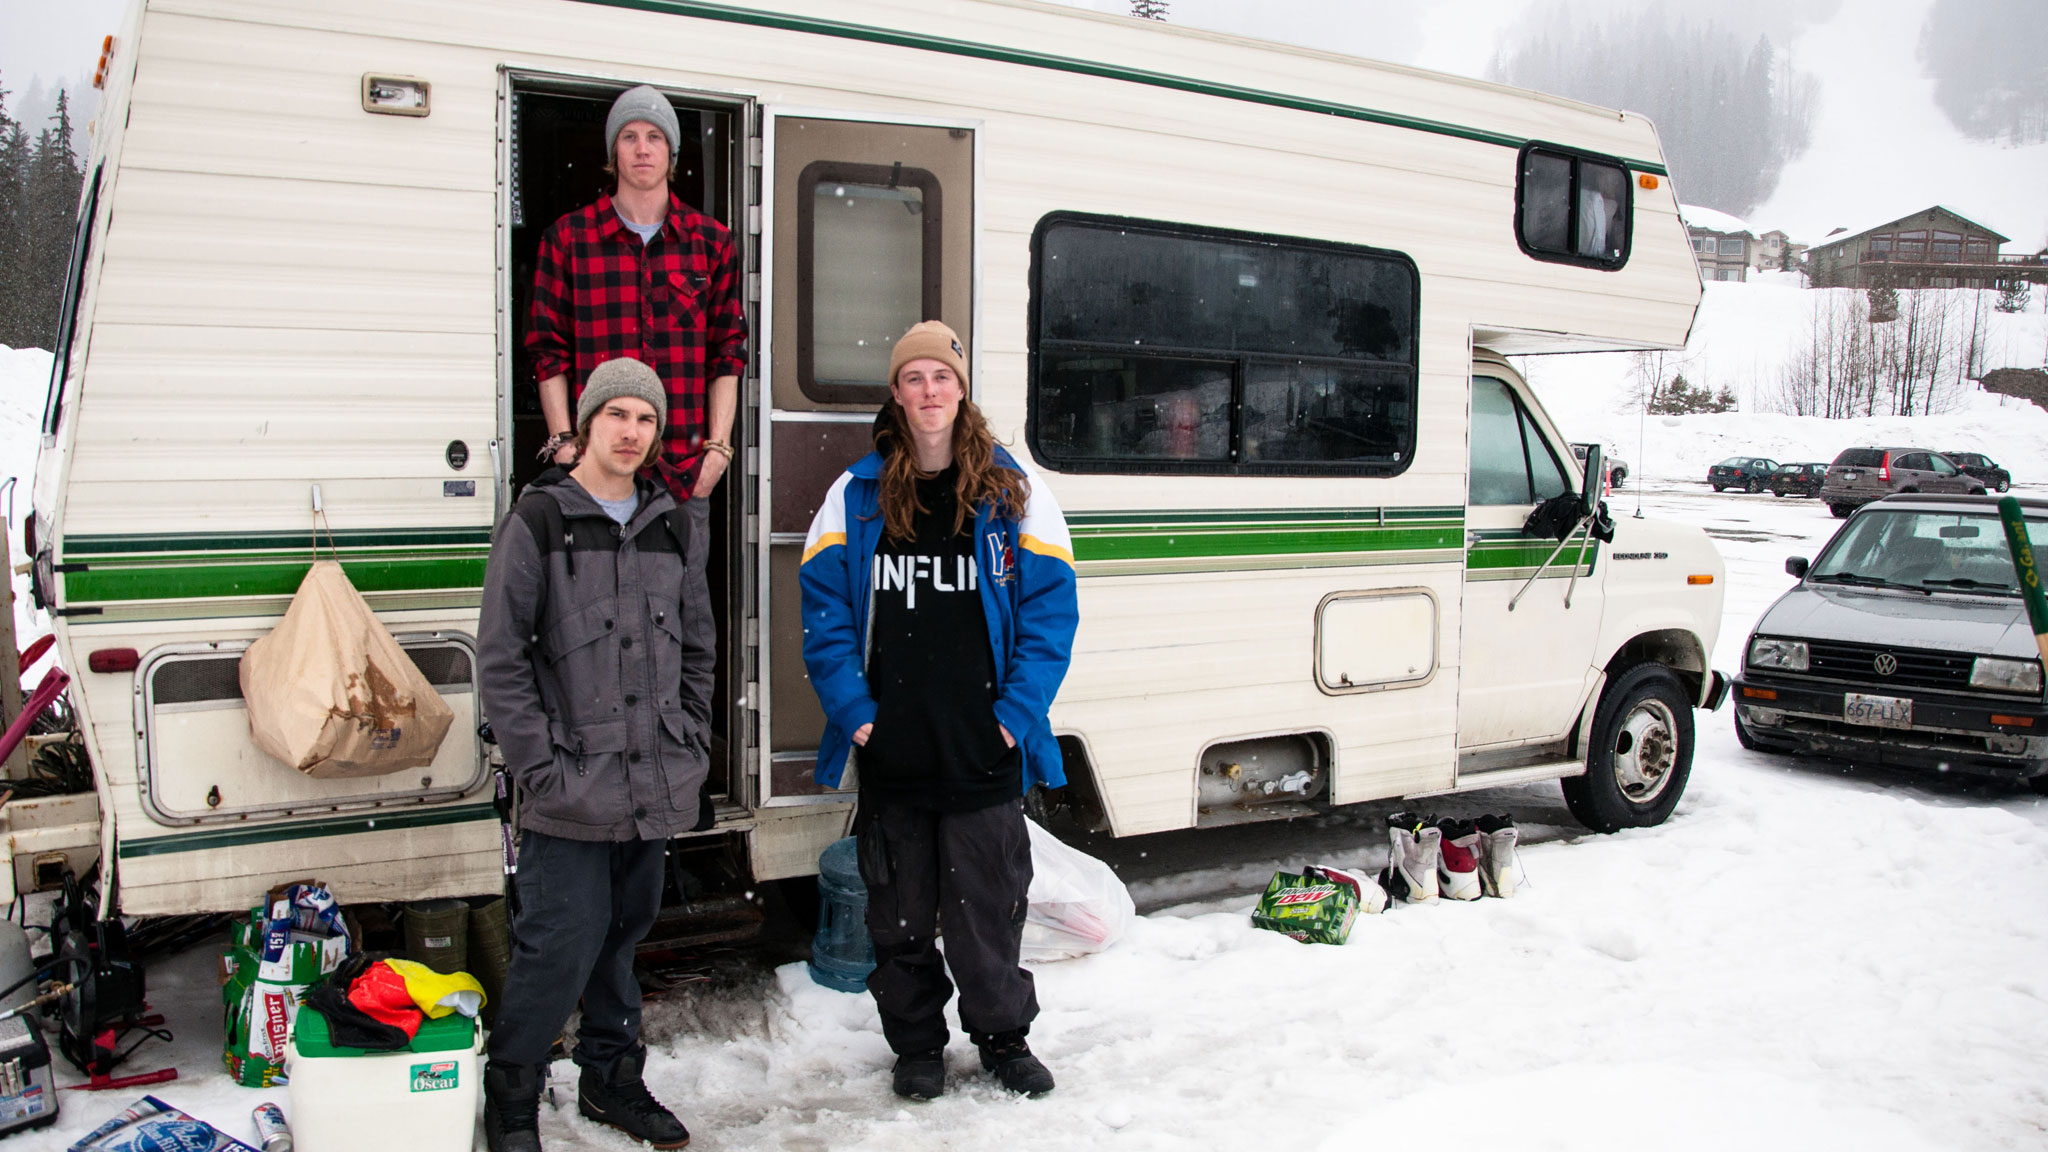 Inflik Media's Kaleb Weston, Kieran Nikula and Jarred Martin in front of their 1989 Ford motorhome.